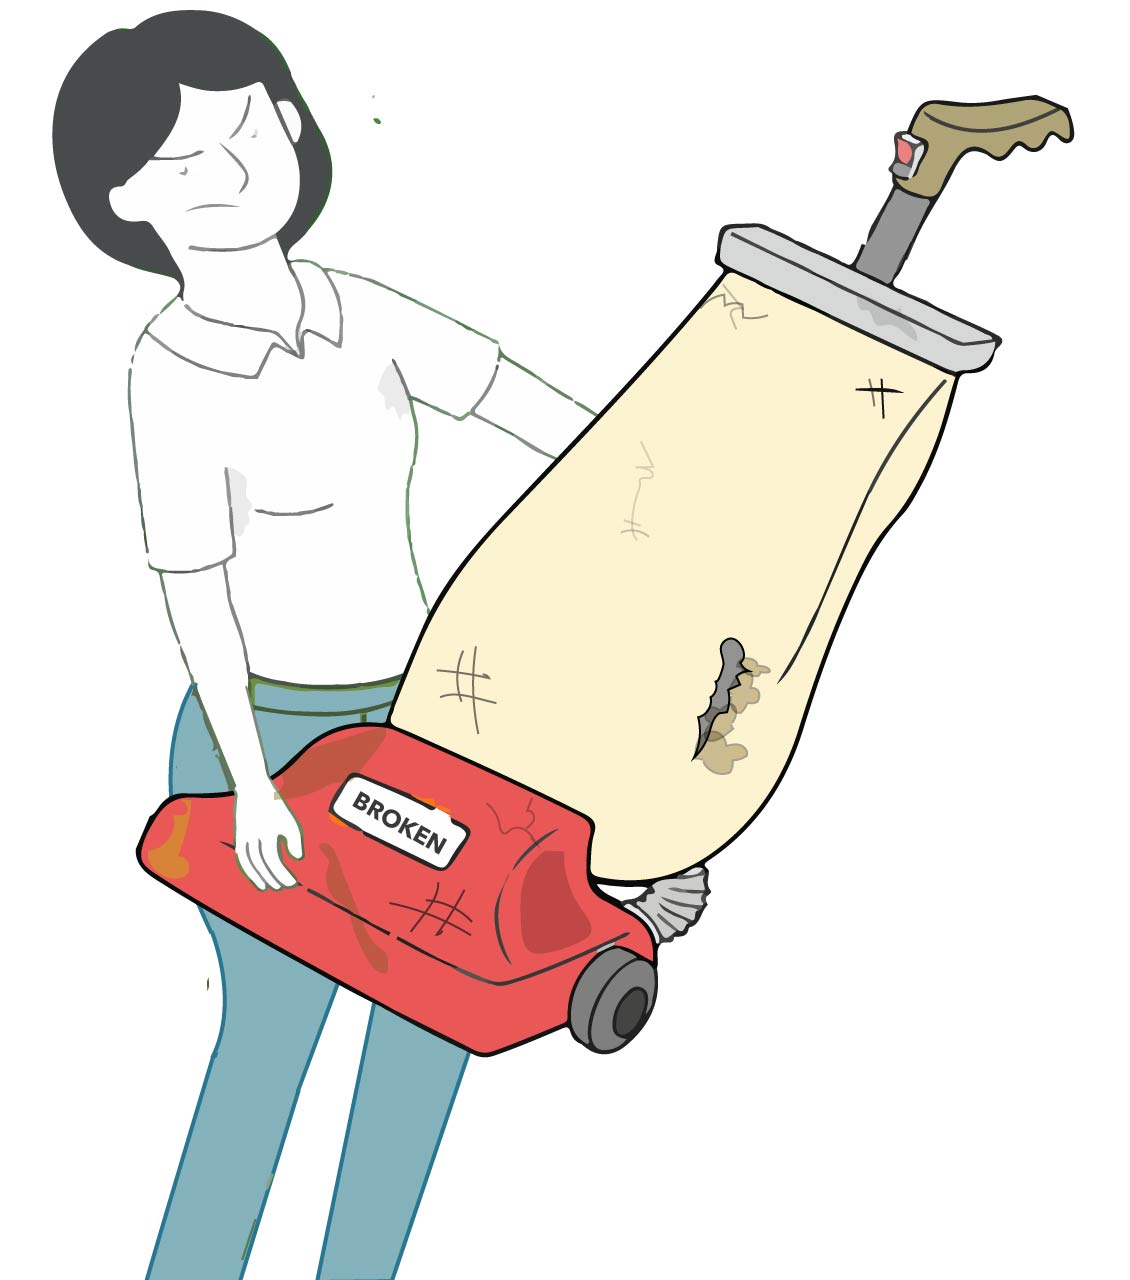 How to get rid of an old vacuum cleaner